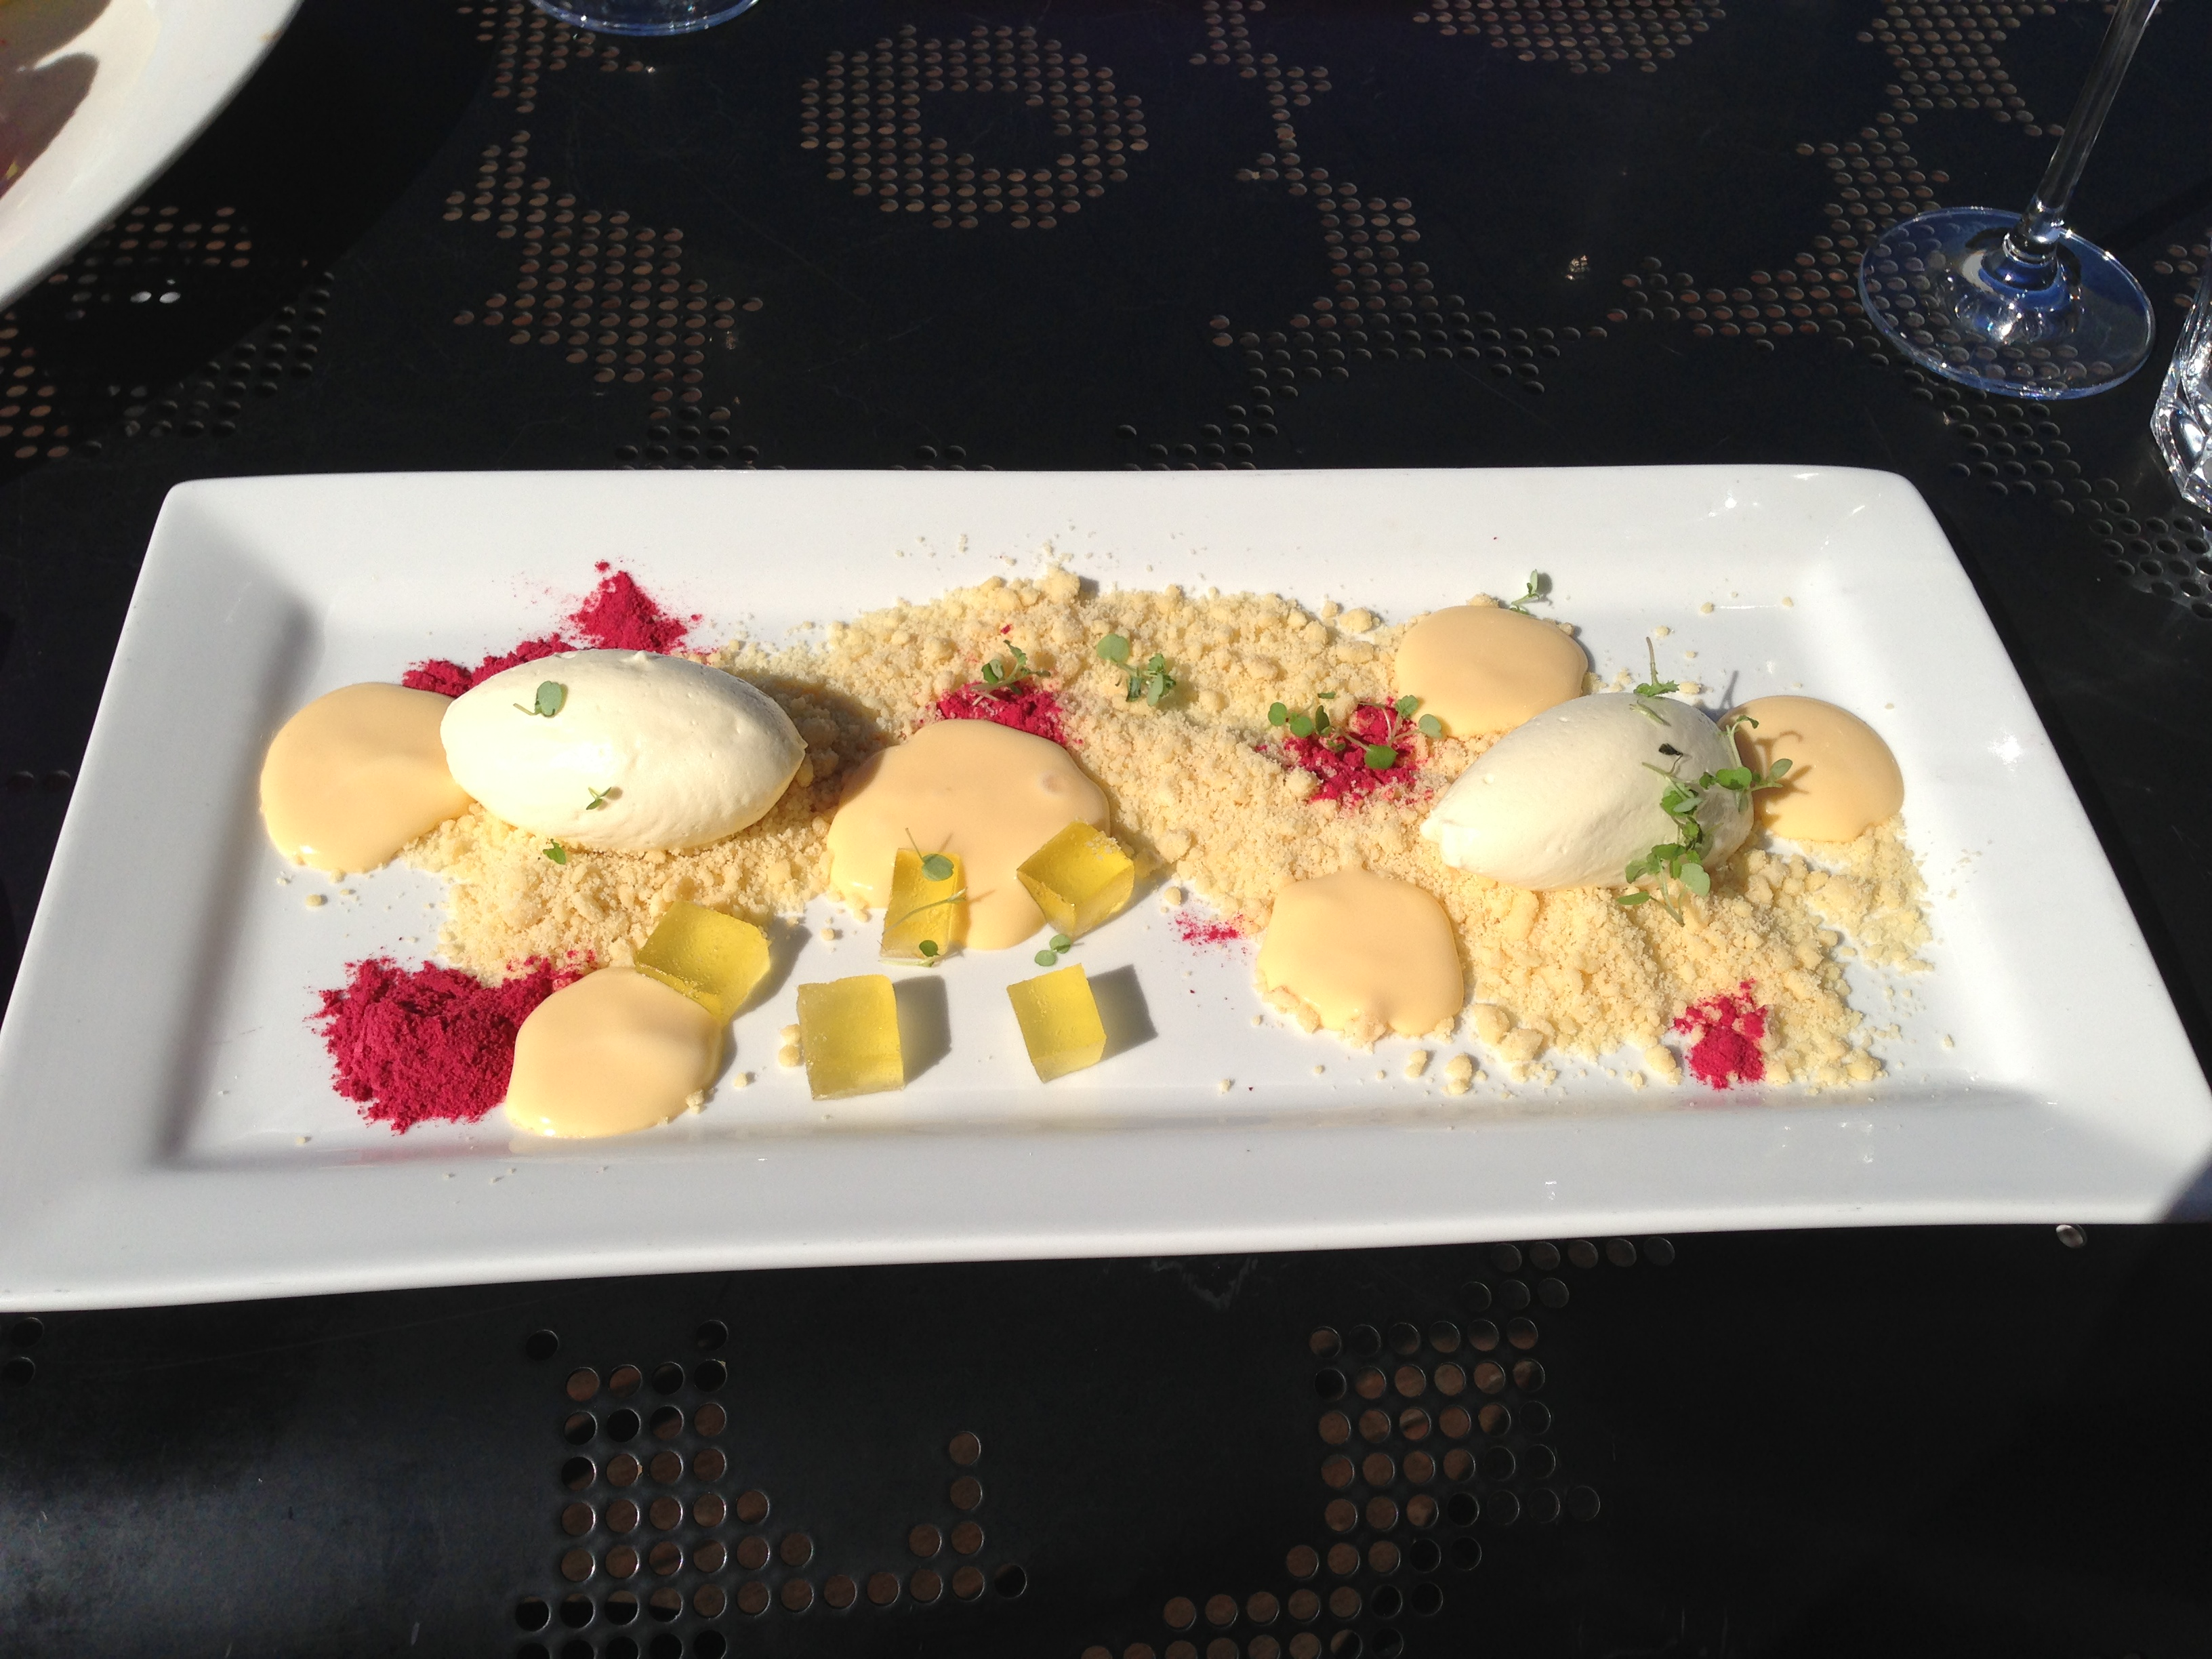 Fairies tree fitzroy gardens leanne s delicious food and travel - Deconstructed Lemon Tart